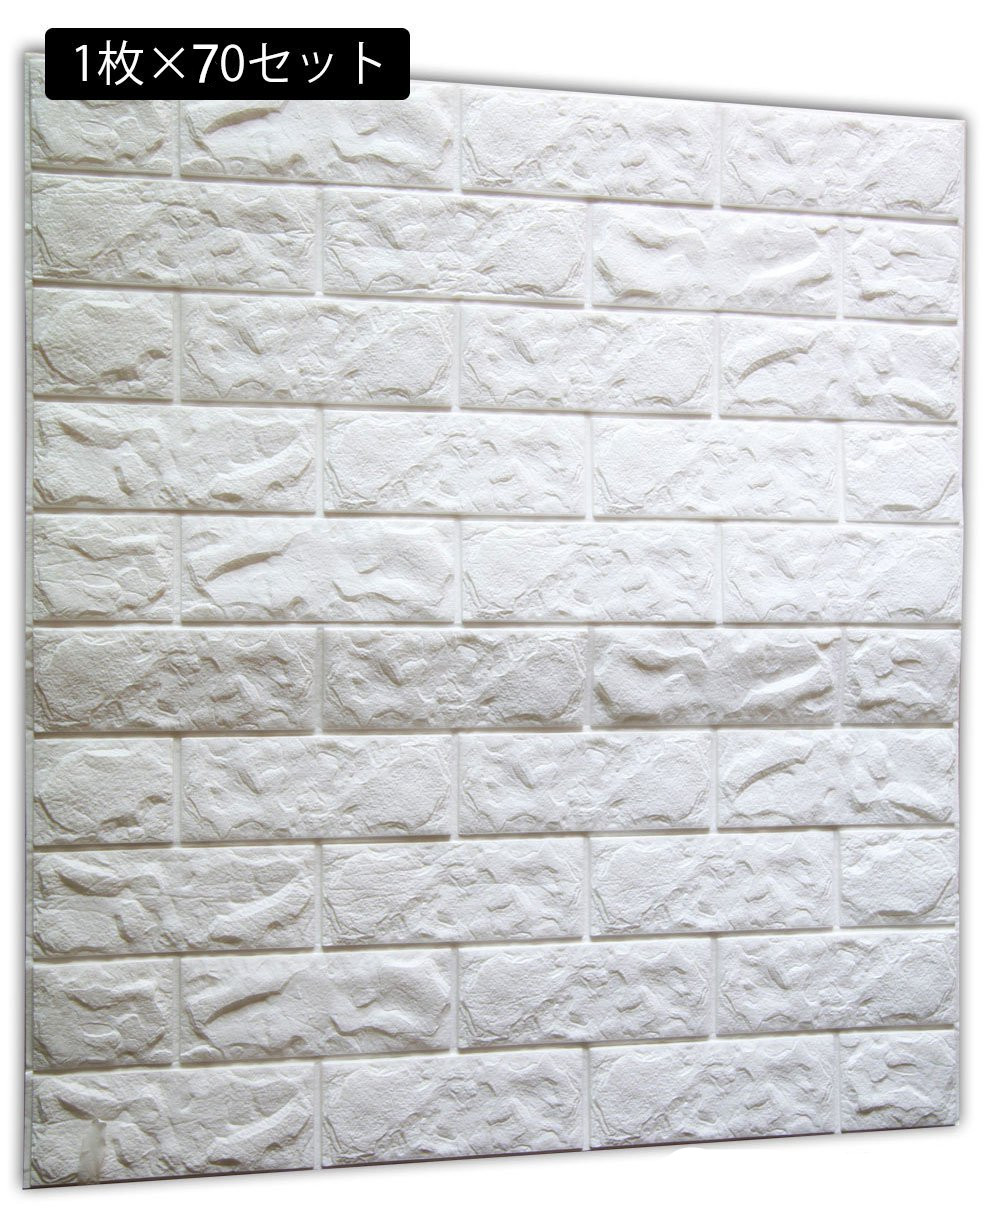 70 pcs PE Foam 3D Wallpaper DIY Wall Stickers Wall Decor Embossed Brick Stone Brick pattern 3D Textured PE Foam Wallpaper Wall reed swaying pattern large wall stickers for bedrooms